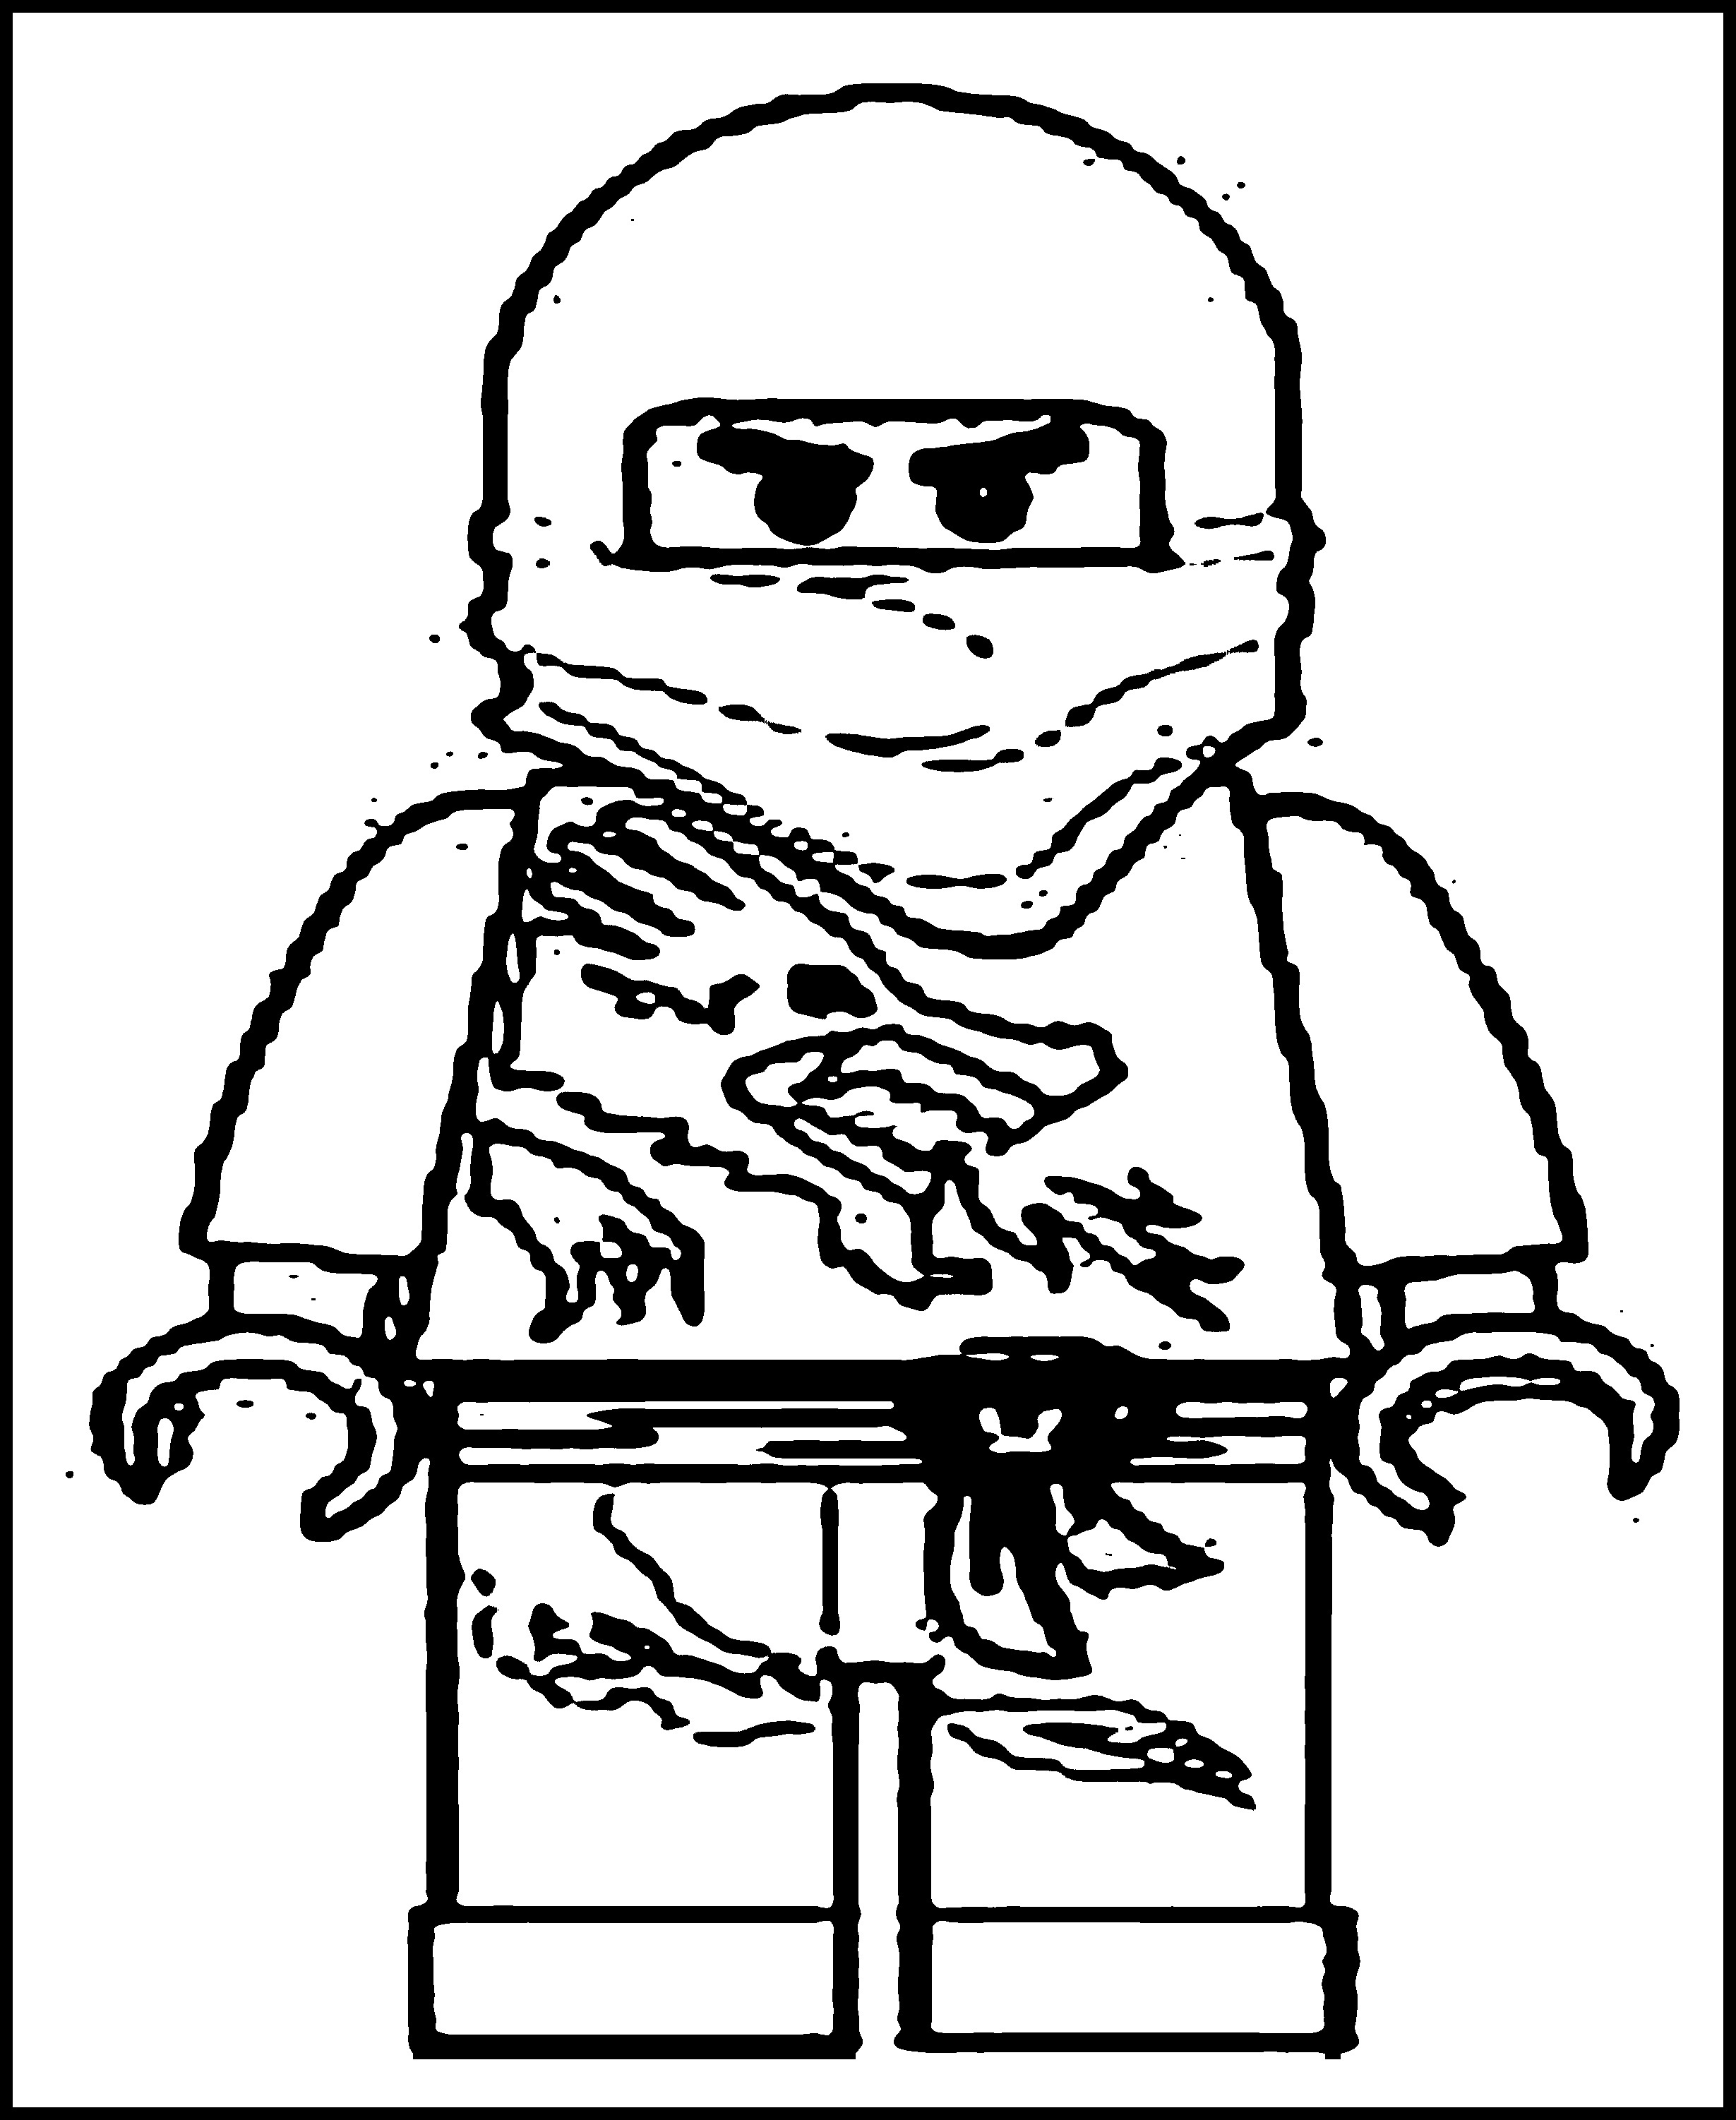 70755 Colouring Page Ninjago Activities LEGO - Cars Coloring